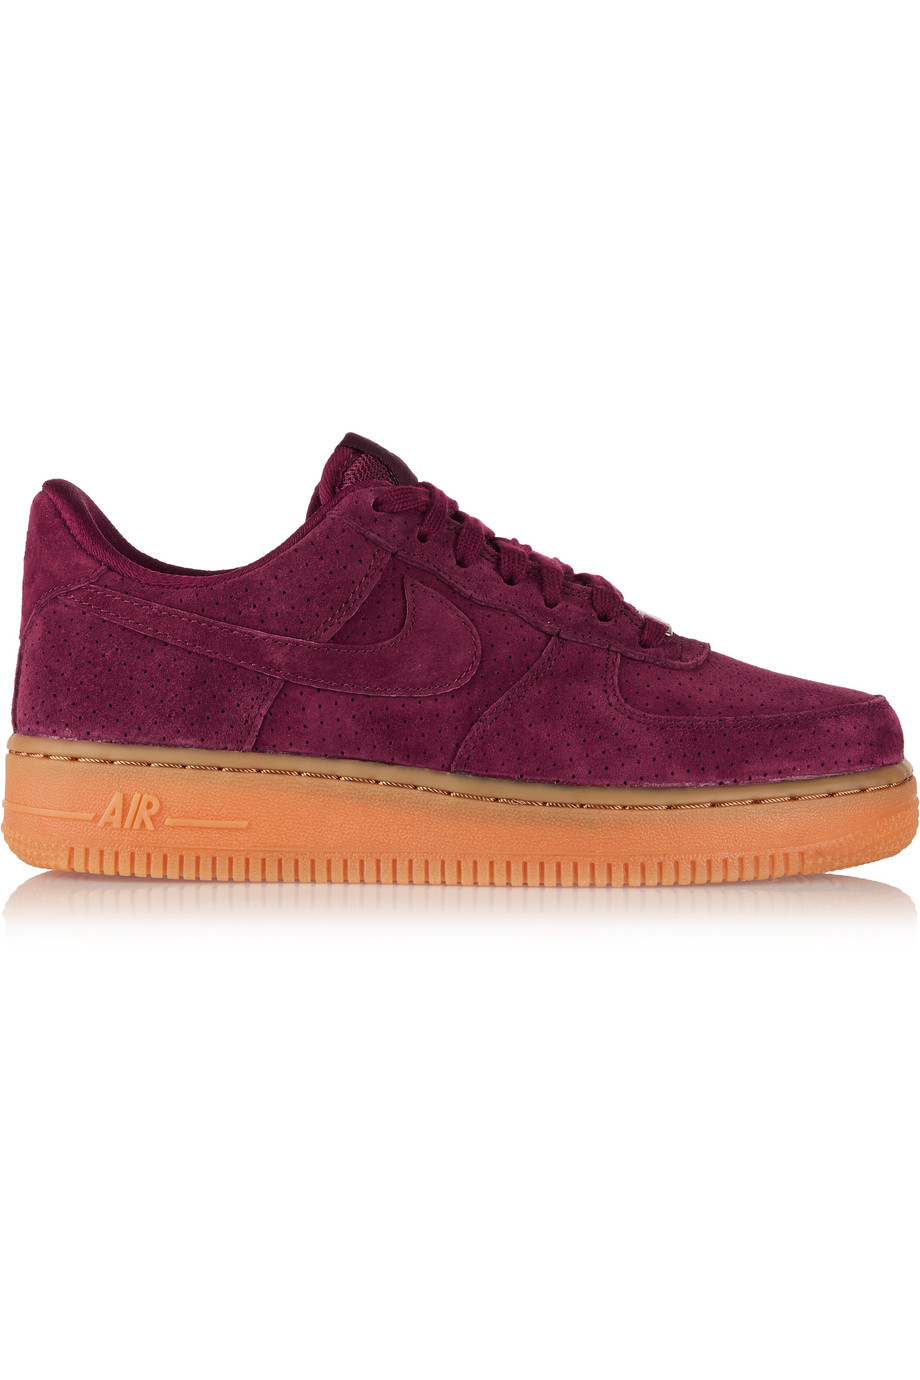 Nike Air Force 1 07 Suede Sneakers, Burgundy, Women's, Size: 11